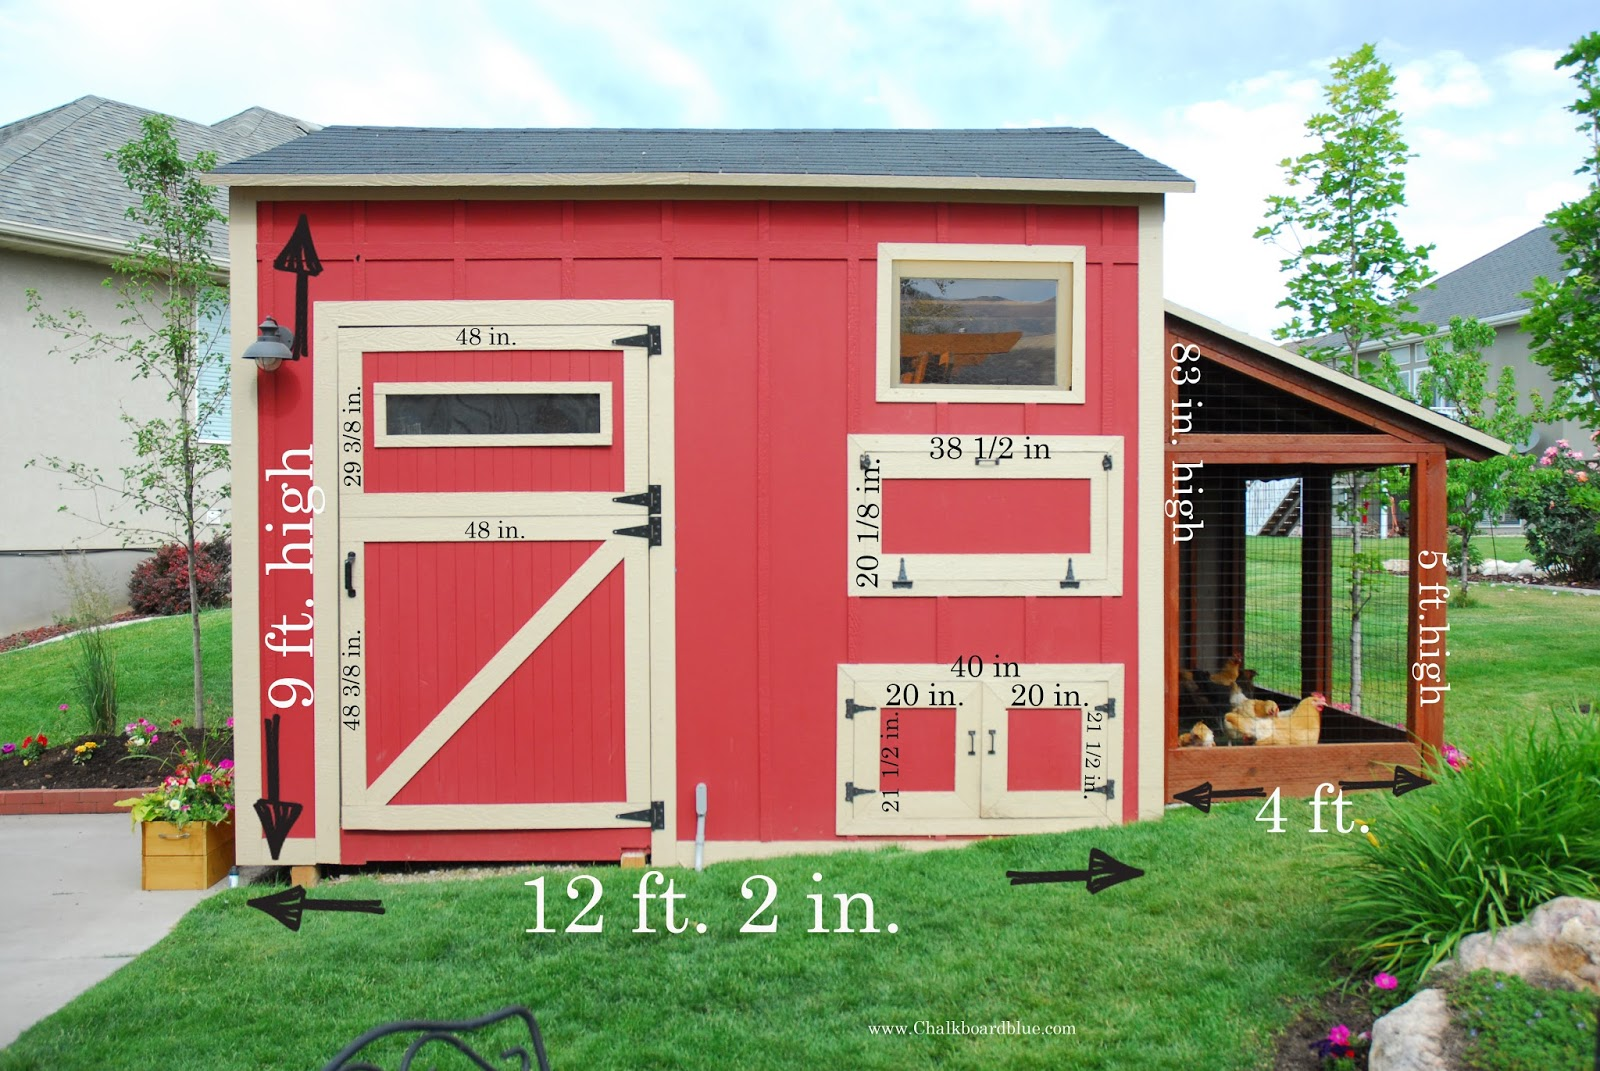 Chalkboard blue shed chicken coop measurements for Chicken coop dimensions